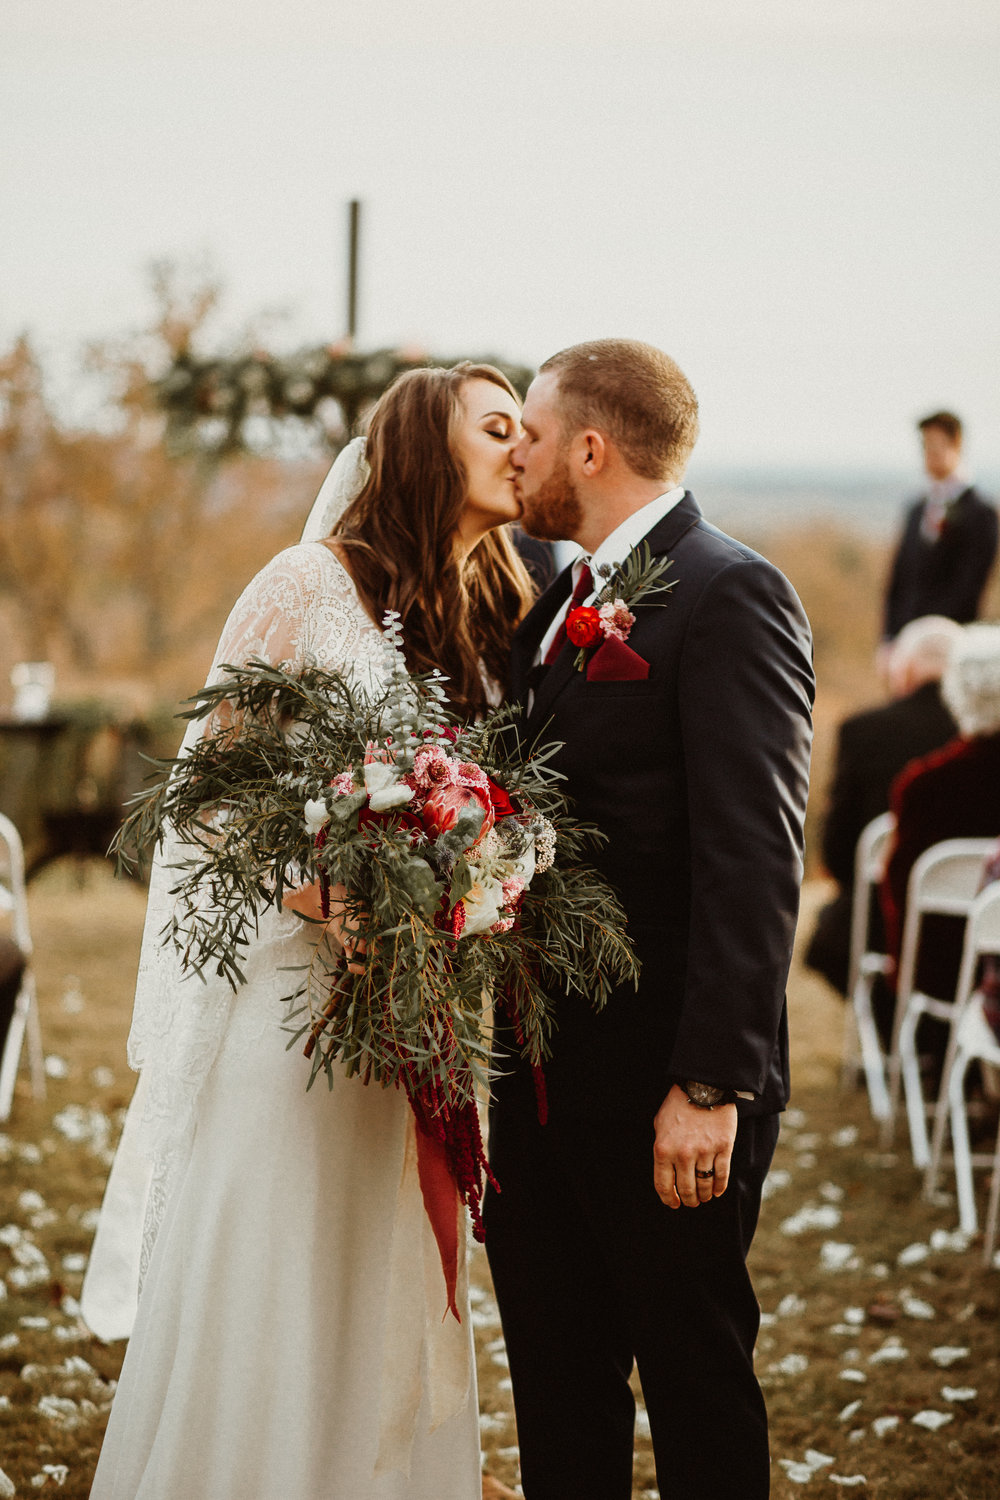 HAYLEY + BRANDON - Dreamy Mountaintop Rustic Wedding